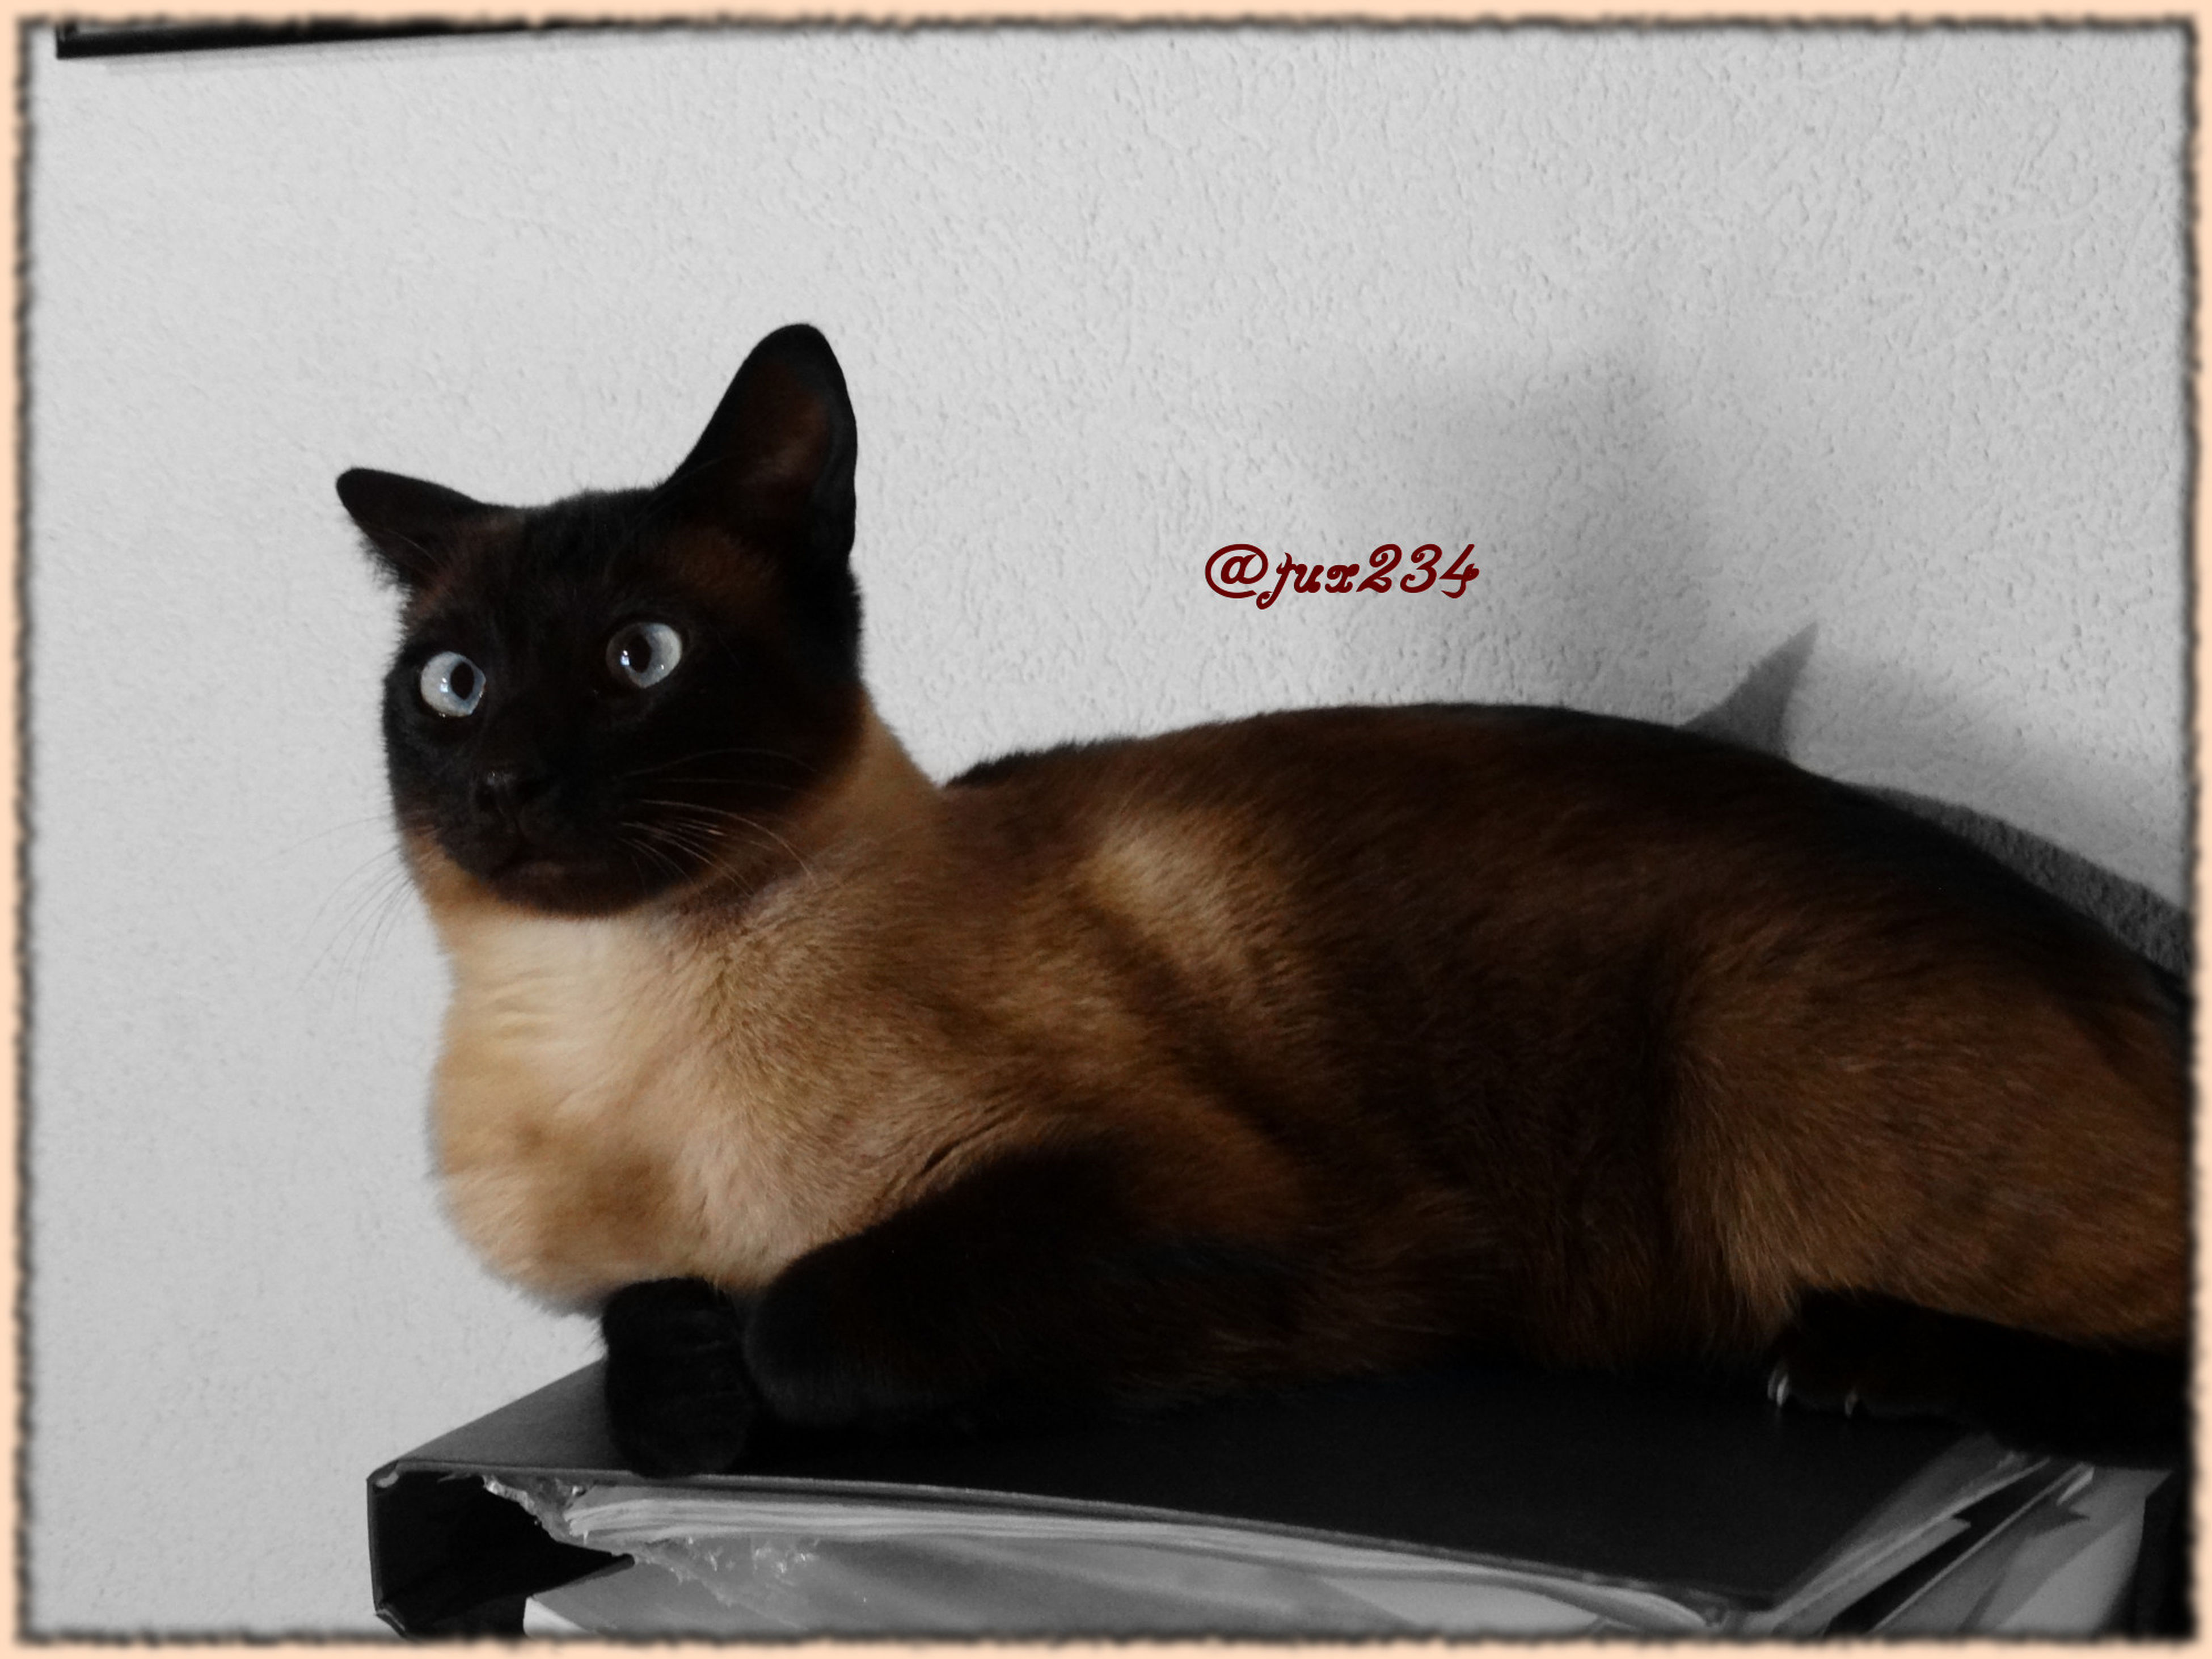 pets, domestic animals, animal themes, one animal, mammal, domestic cat, cat, indoors, feline, portrait, looking at camera, whisker, alertness, close-up, relaxation, sitting, transfer print, auto post production filter, black color